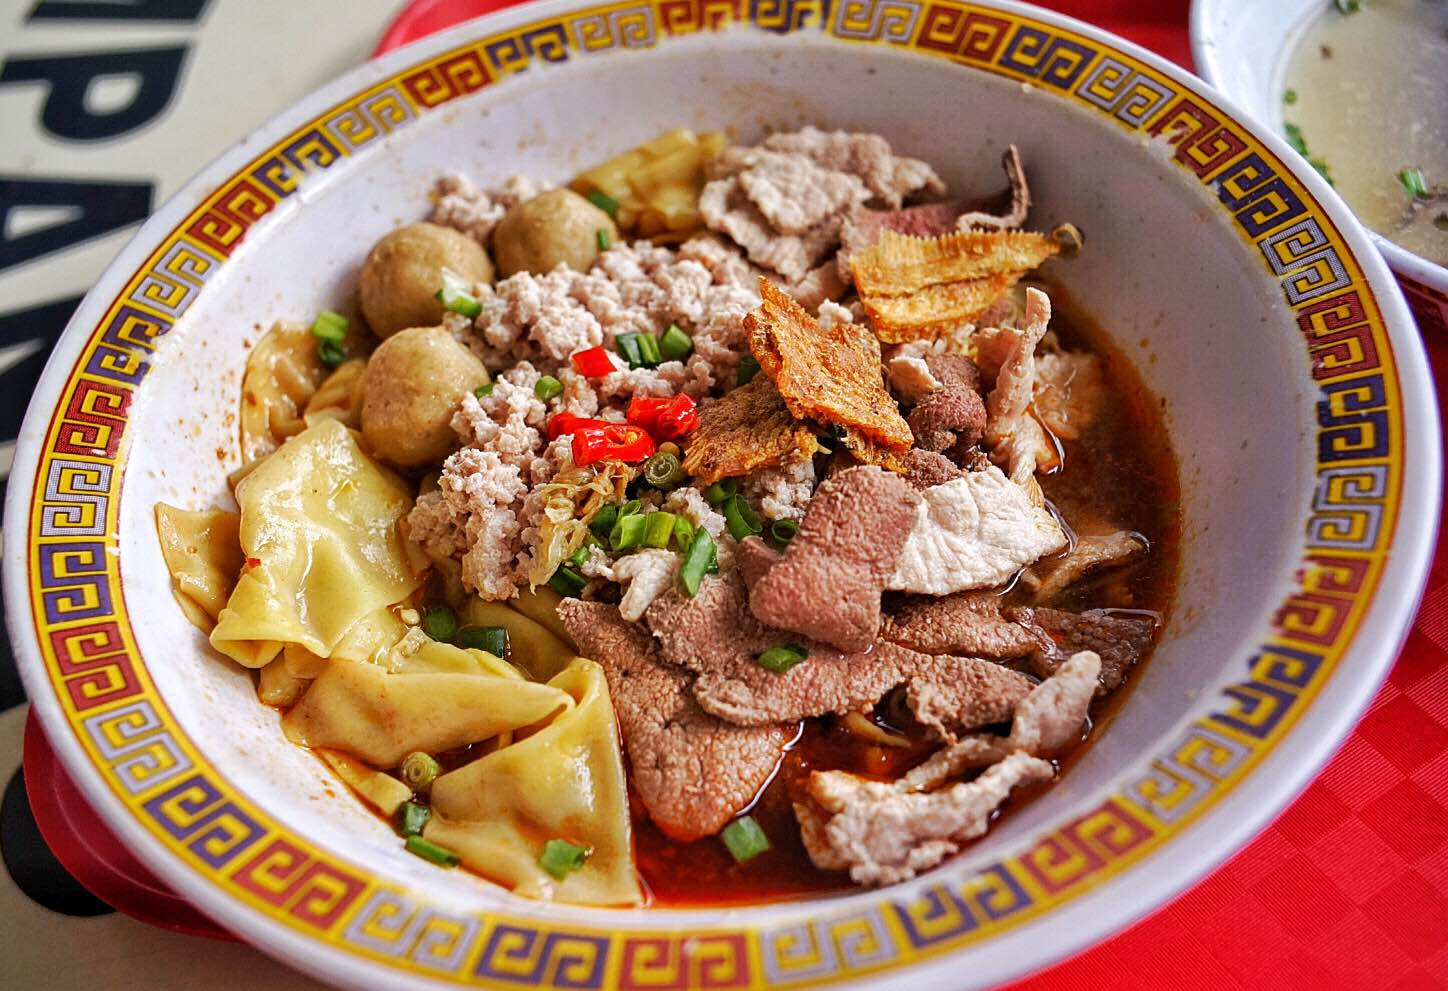 S$5 minced meat noodles from Hill Street Tai Hwa Pork Noodles